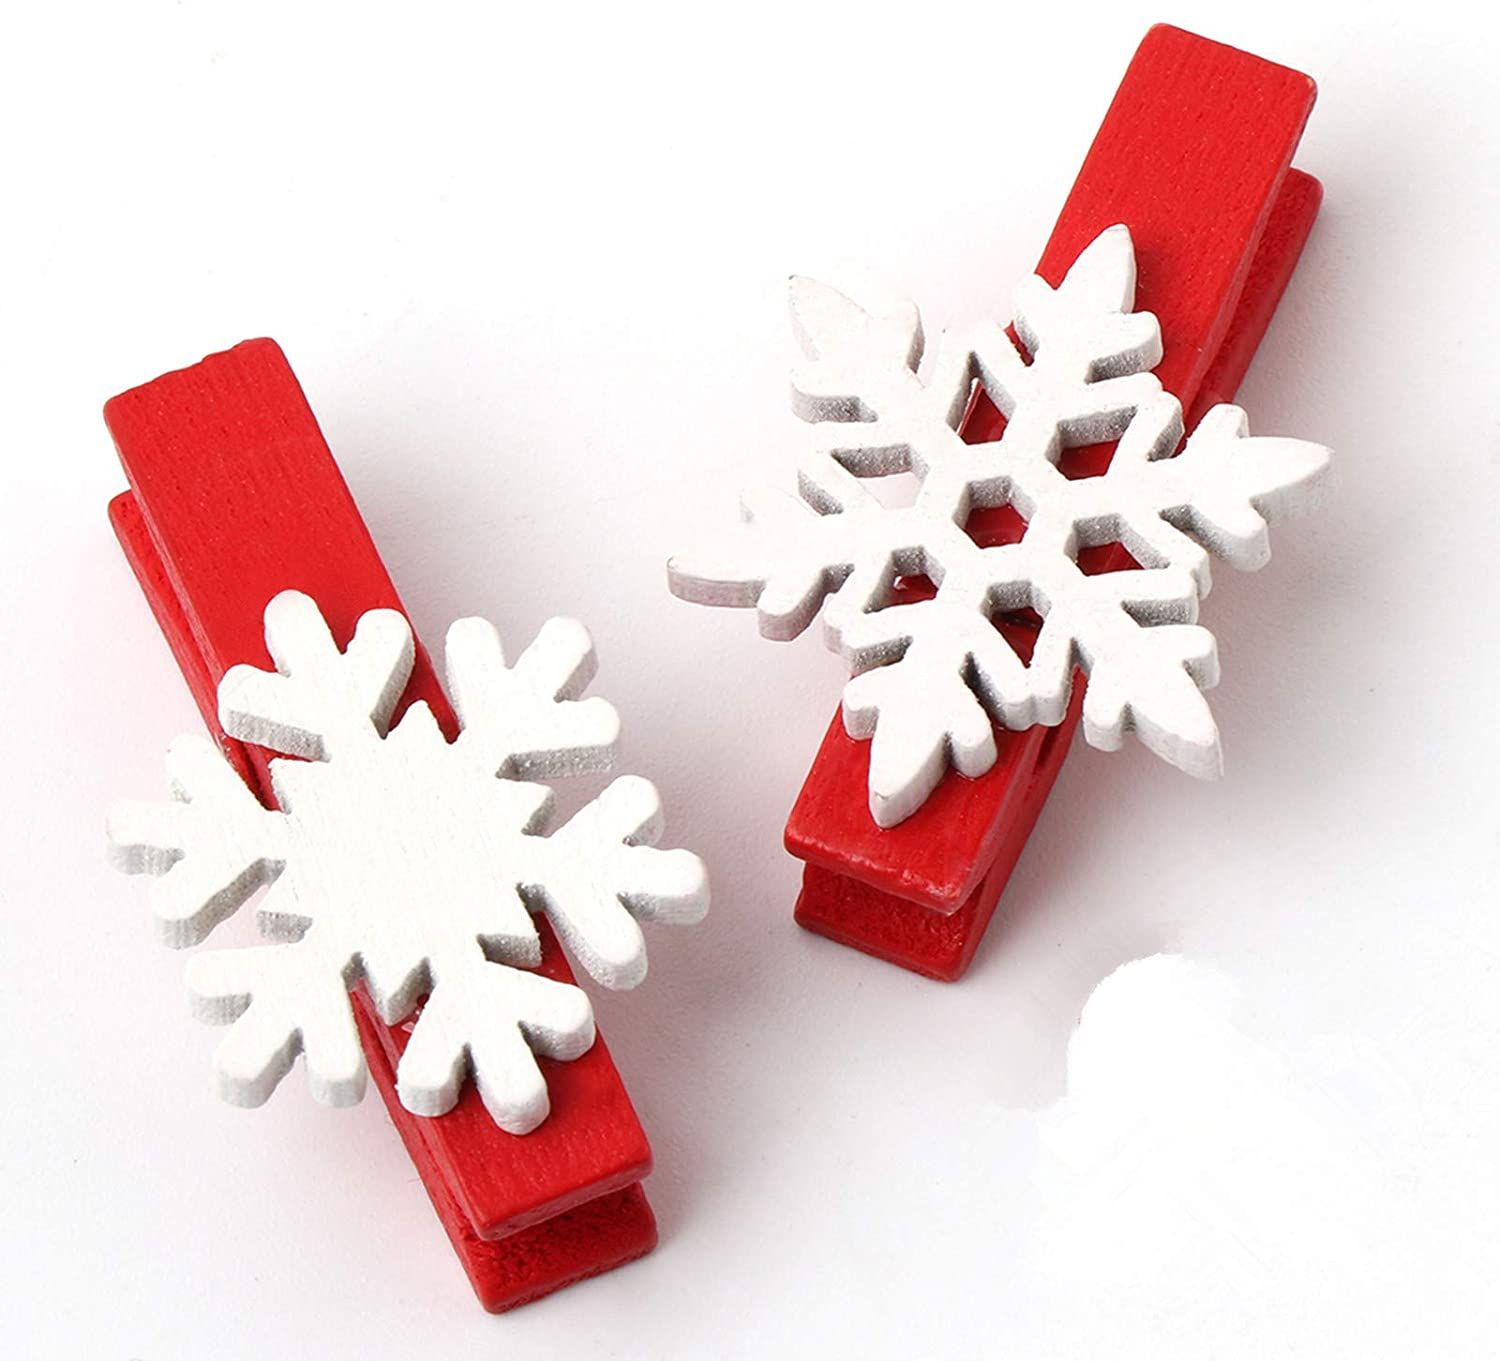 ilauke 50Pcs Christmas Wooden Clothespins Mini Snowflake Clothespin Clips for Christmas Cards Photo Paper Crafts (1.38 Inch)